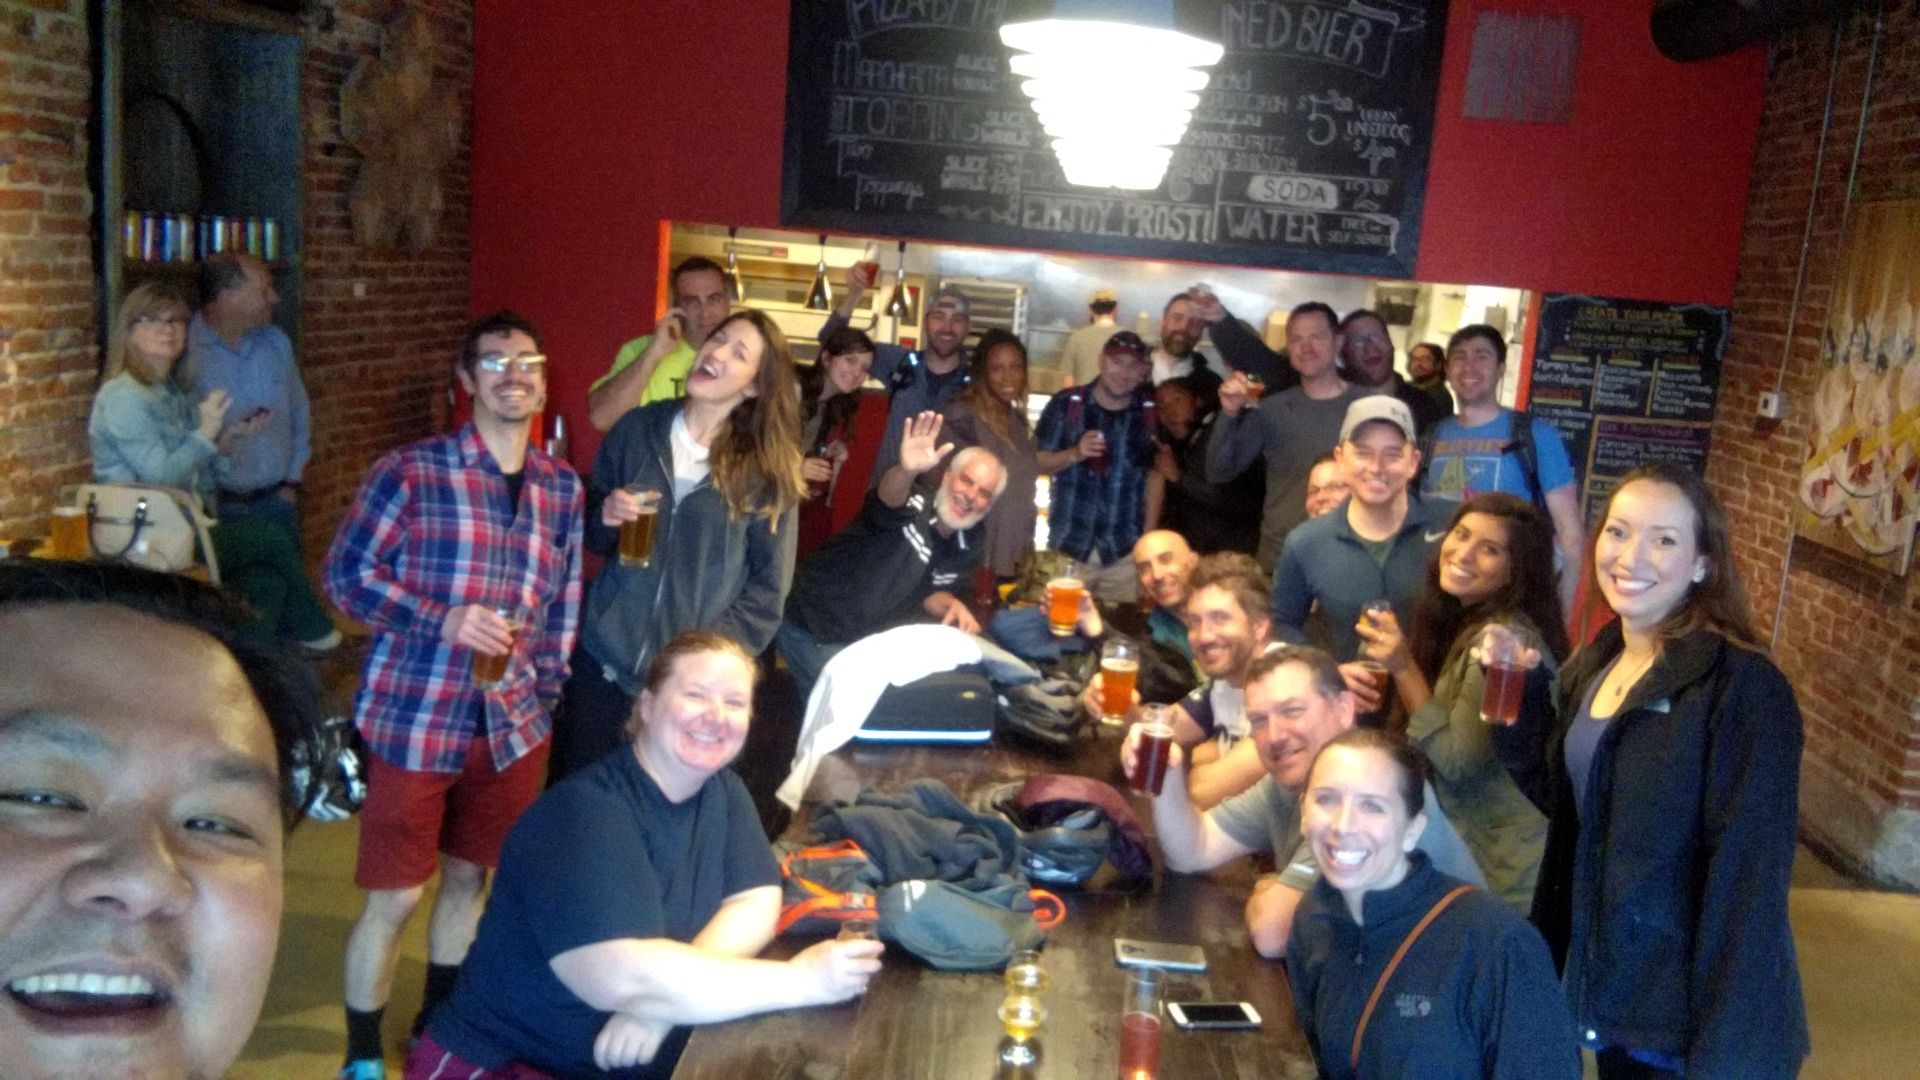 St. Louis Craft Beer Society